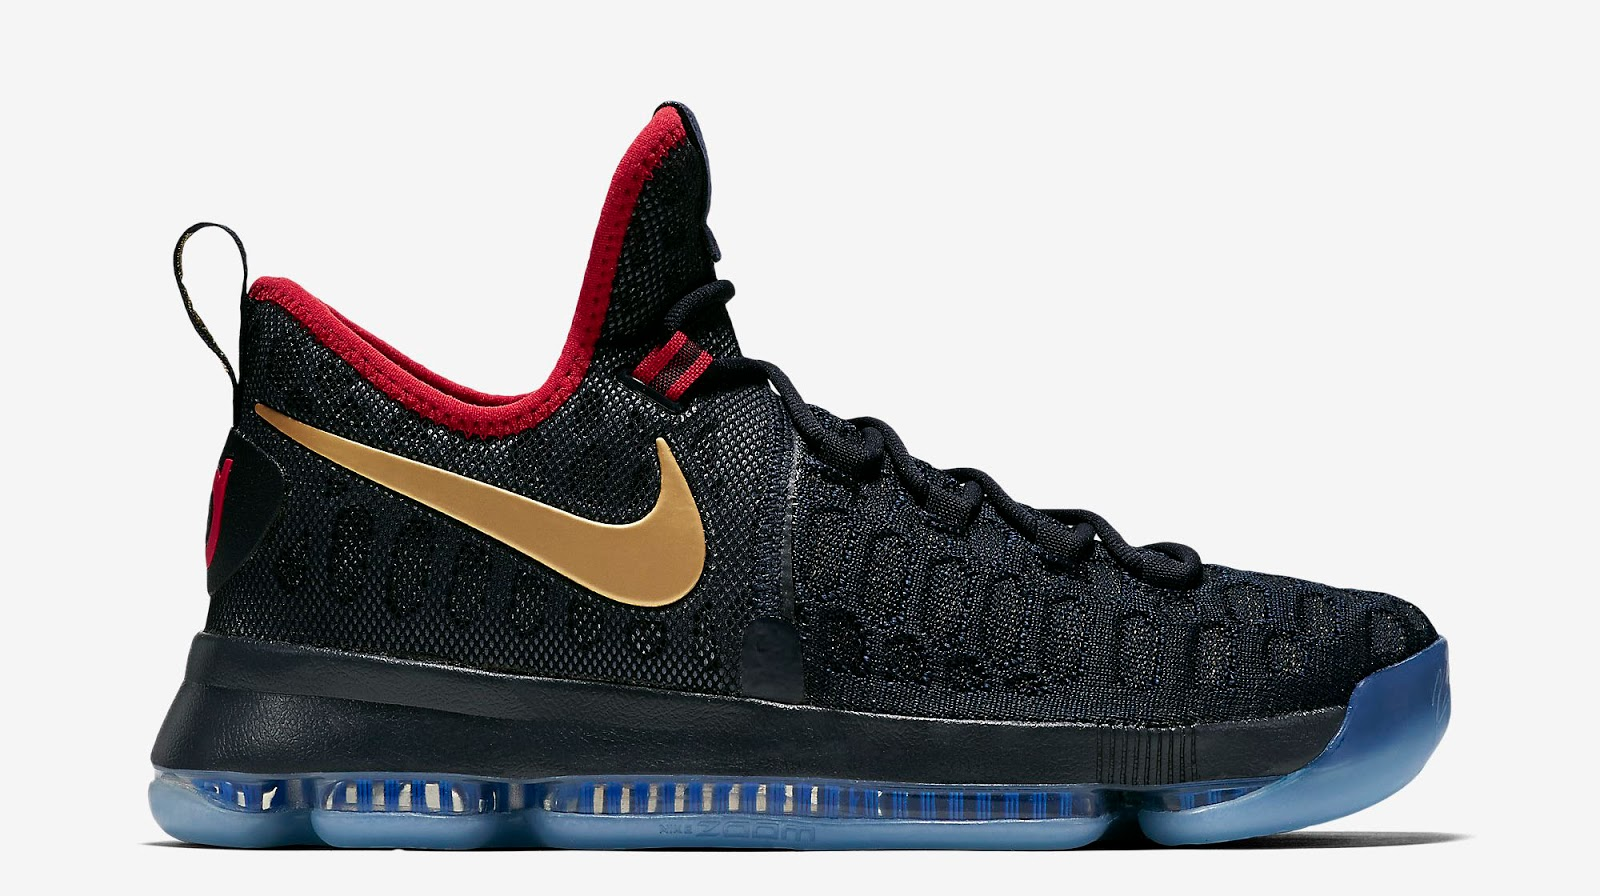 69c7755740cf ajordanxi Your  1 Source For Sneaker Release Dates  Nike Zoom KD 9 ...